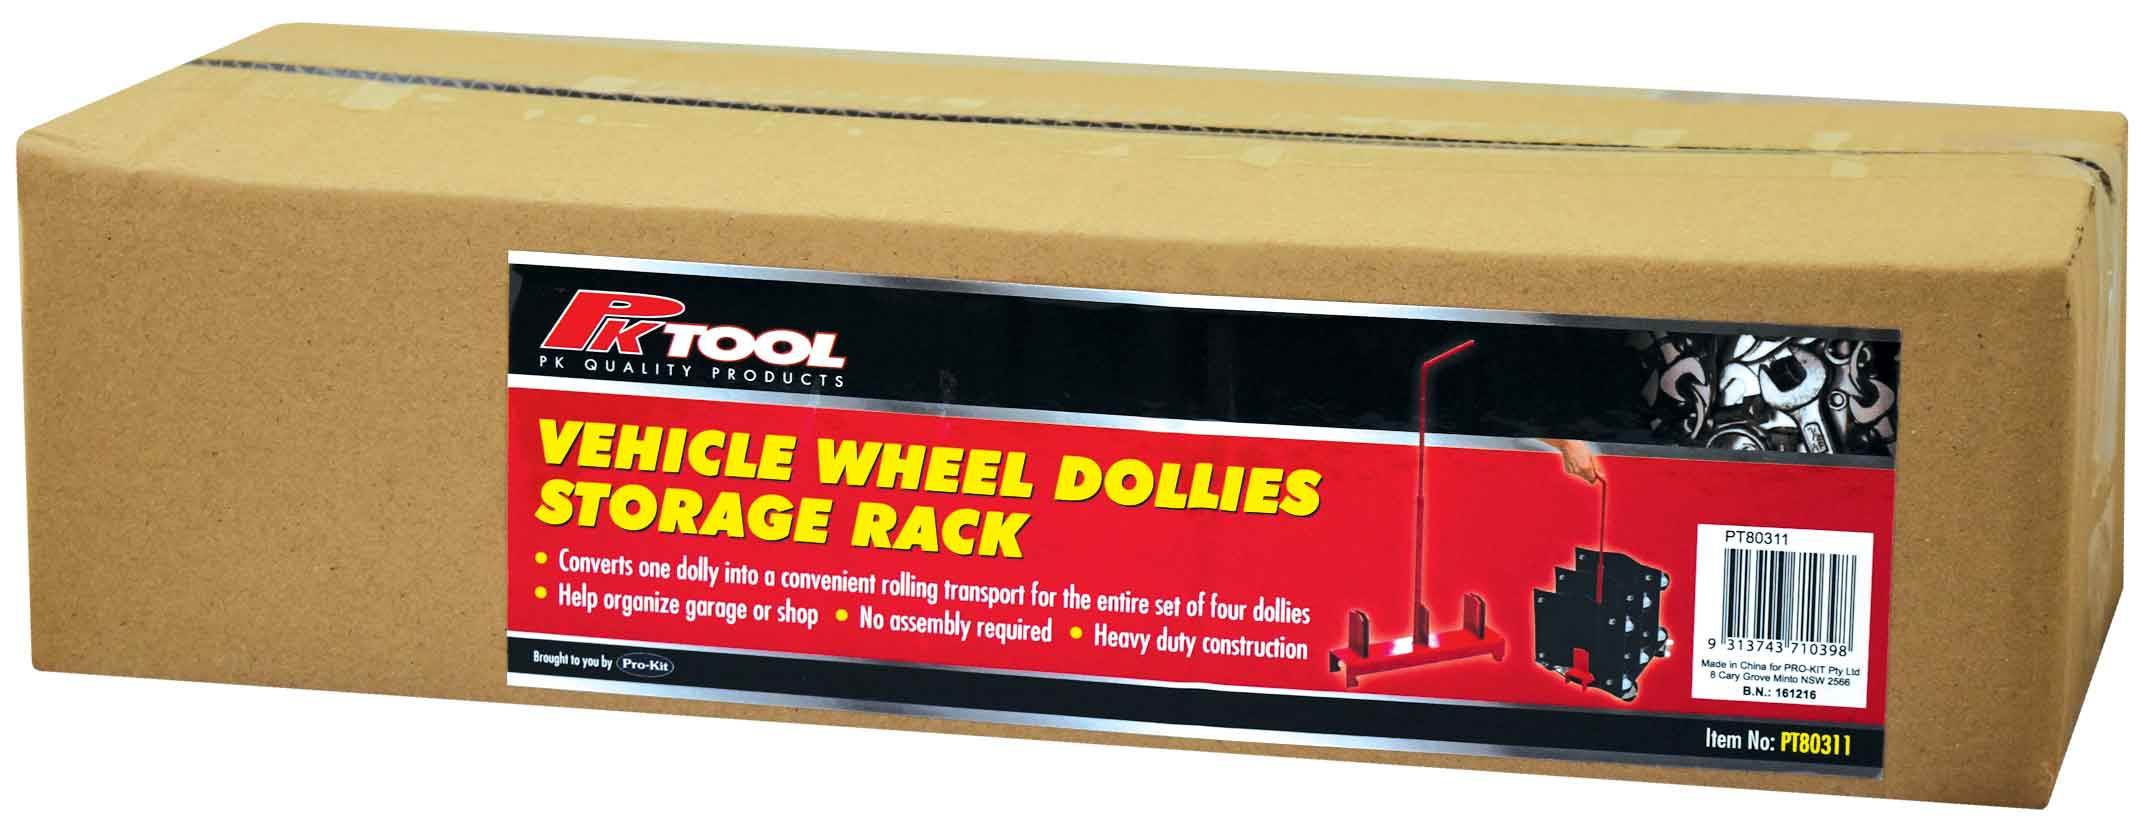 PT80311 Vehicle Wheel Dollies Strorage/Transport Rack thumbnail 4